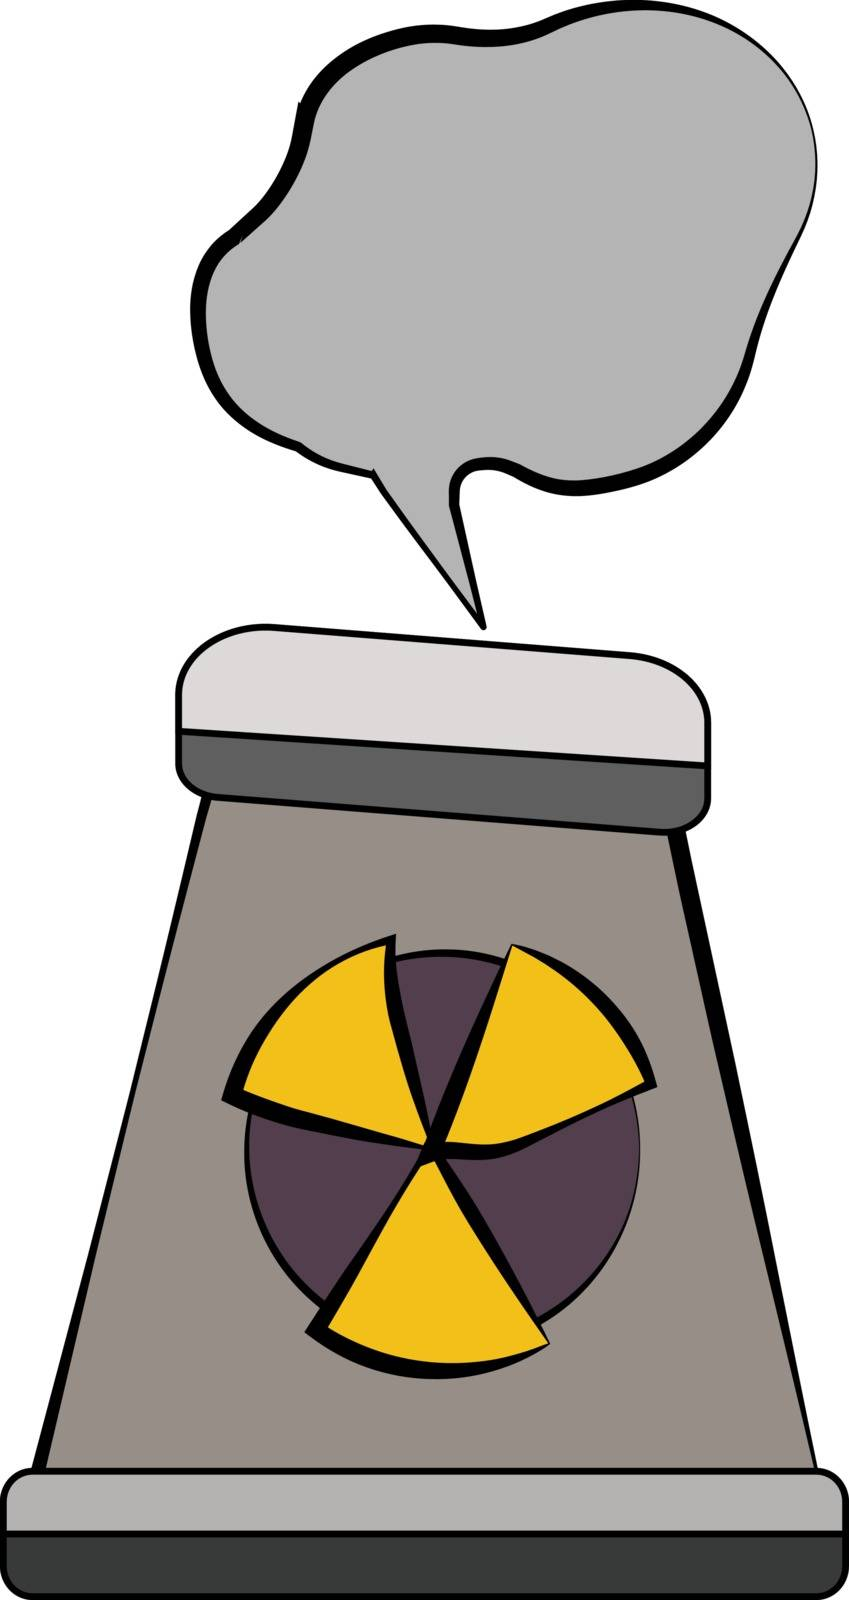 A nuclear plant with hazards sign on it is polluting the environment by billowing out the toxic C14smoke vector color drawing or illustration